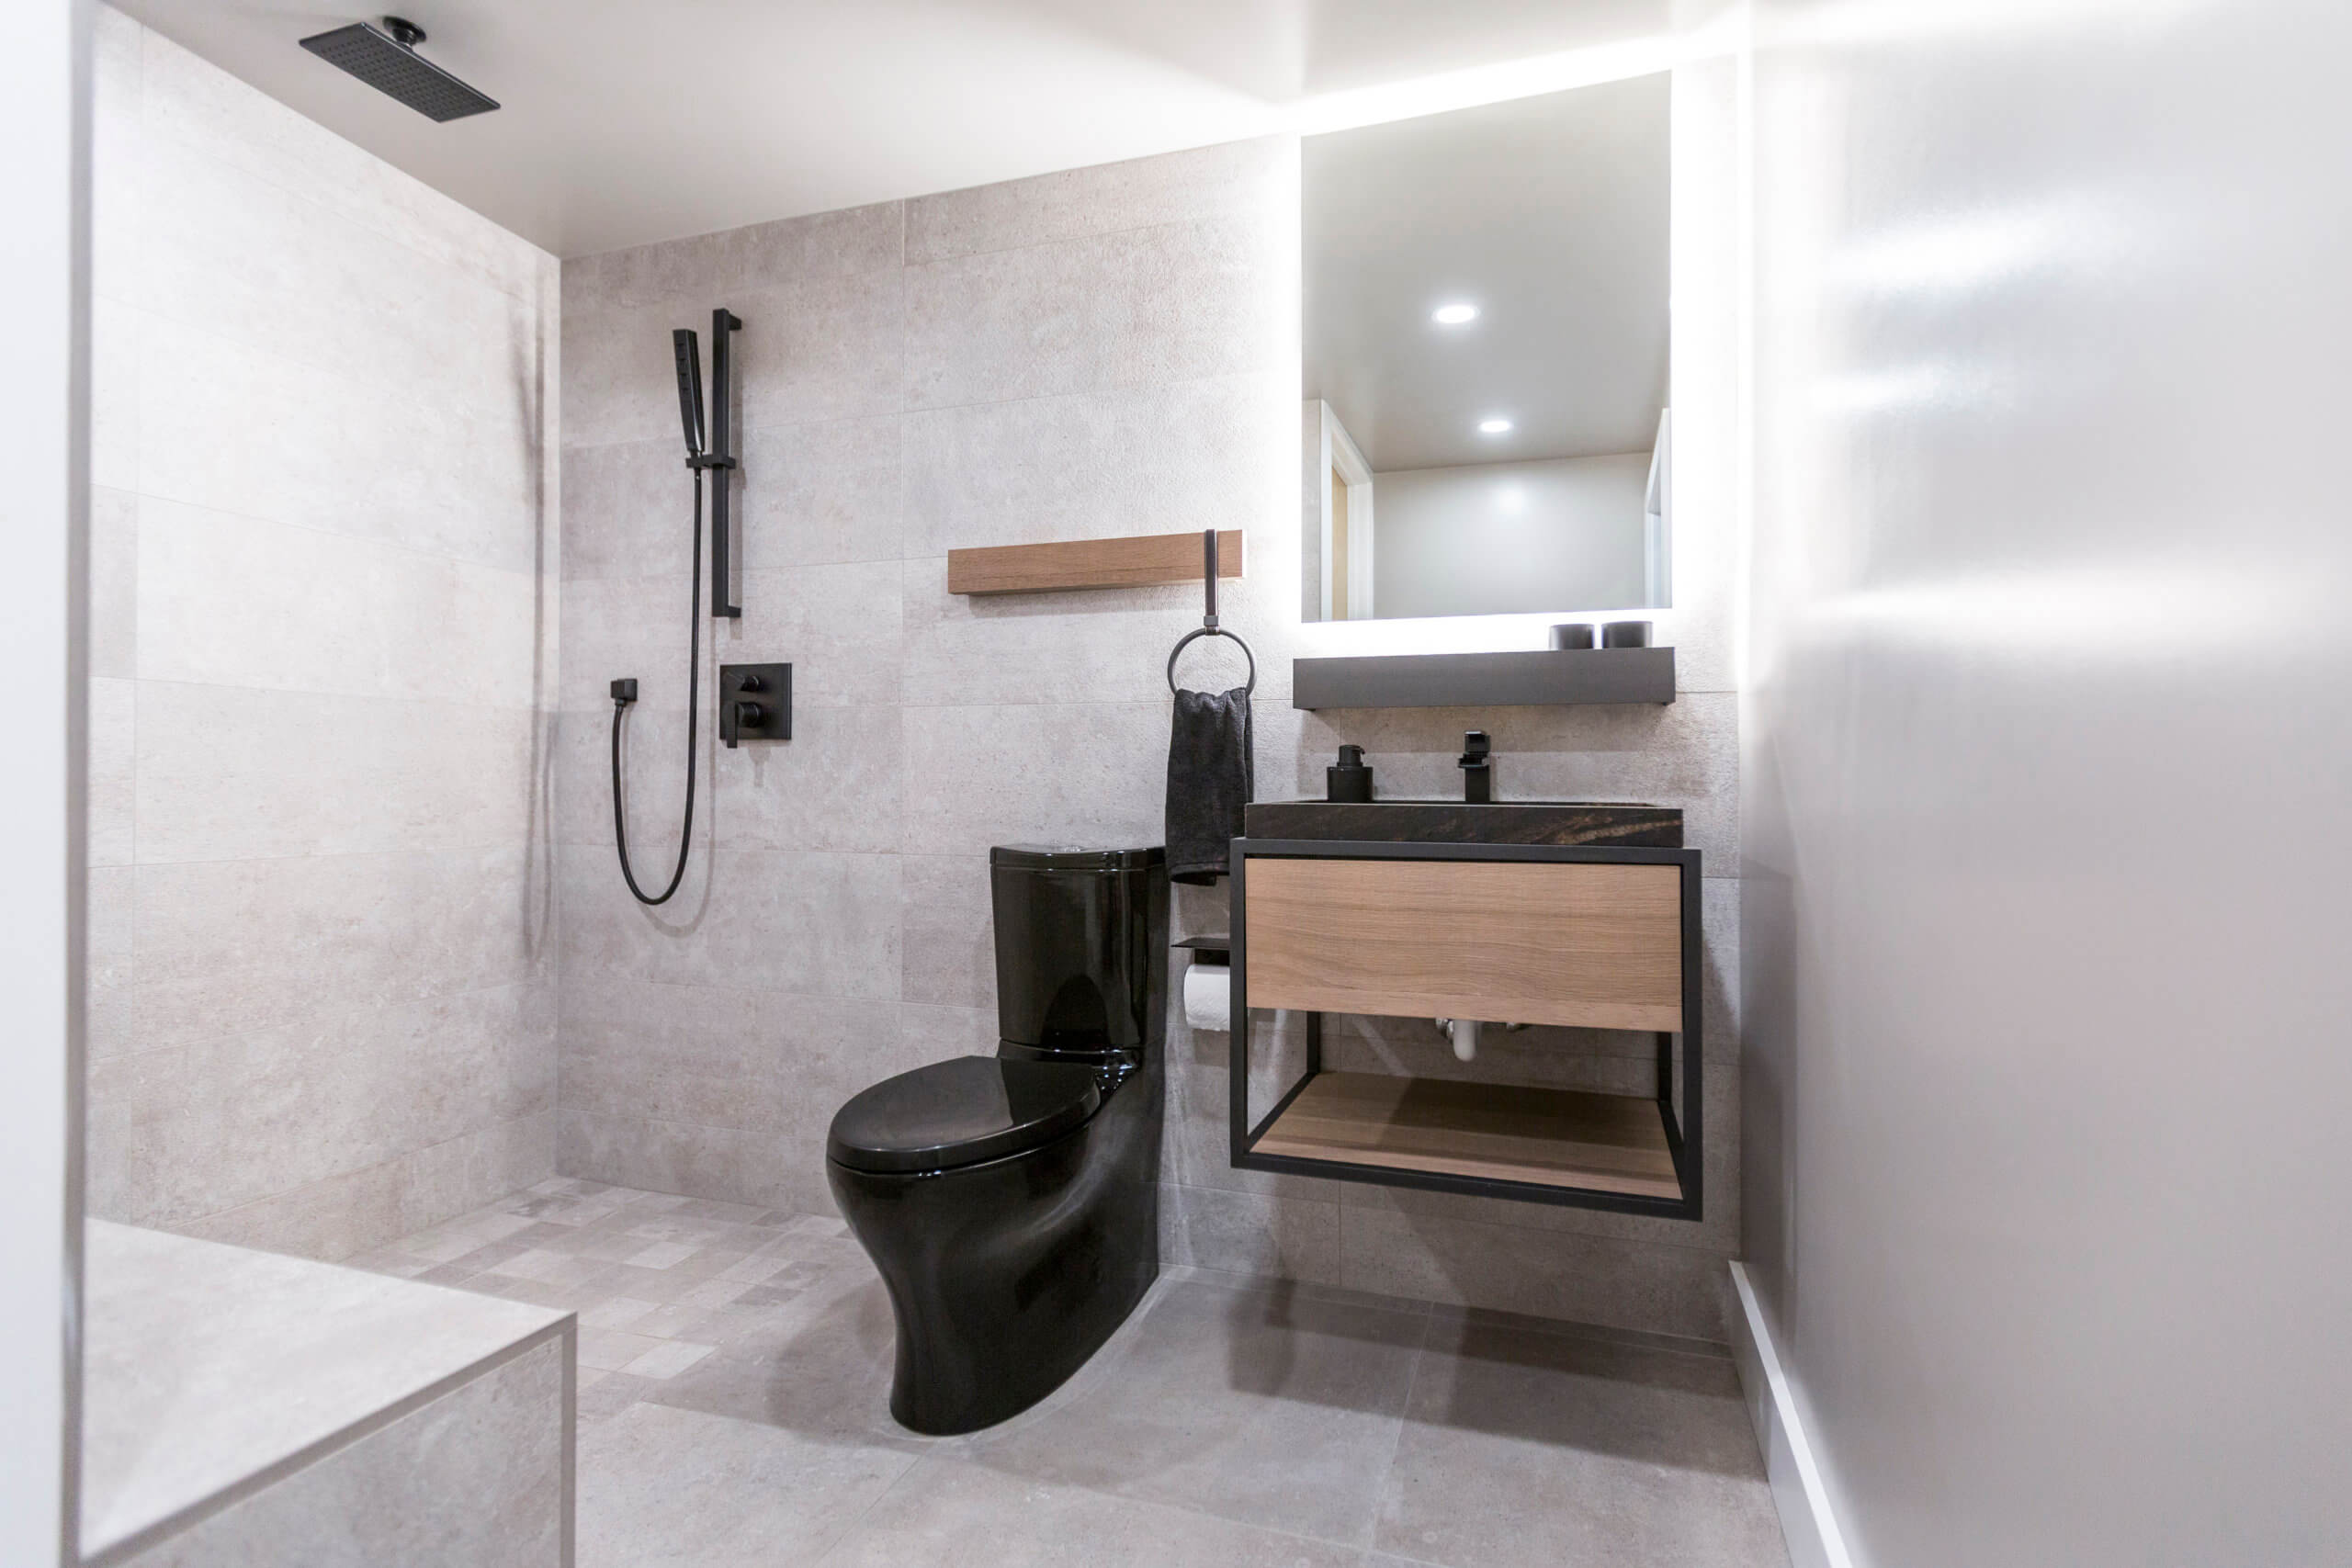 Contemporary tile bathroom with backlit mirror, black toilet and natural wood accents on the custom vanity. Designed by interior designer, RM Interiors.